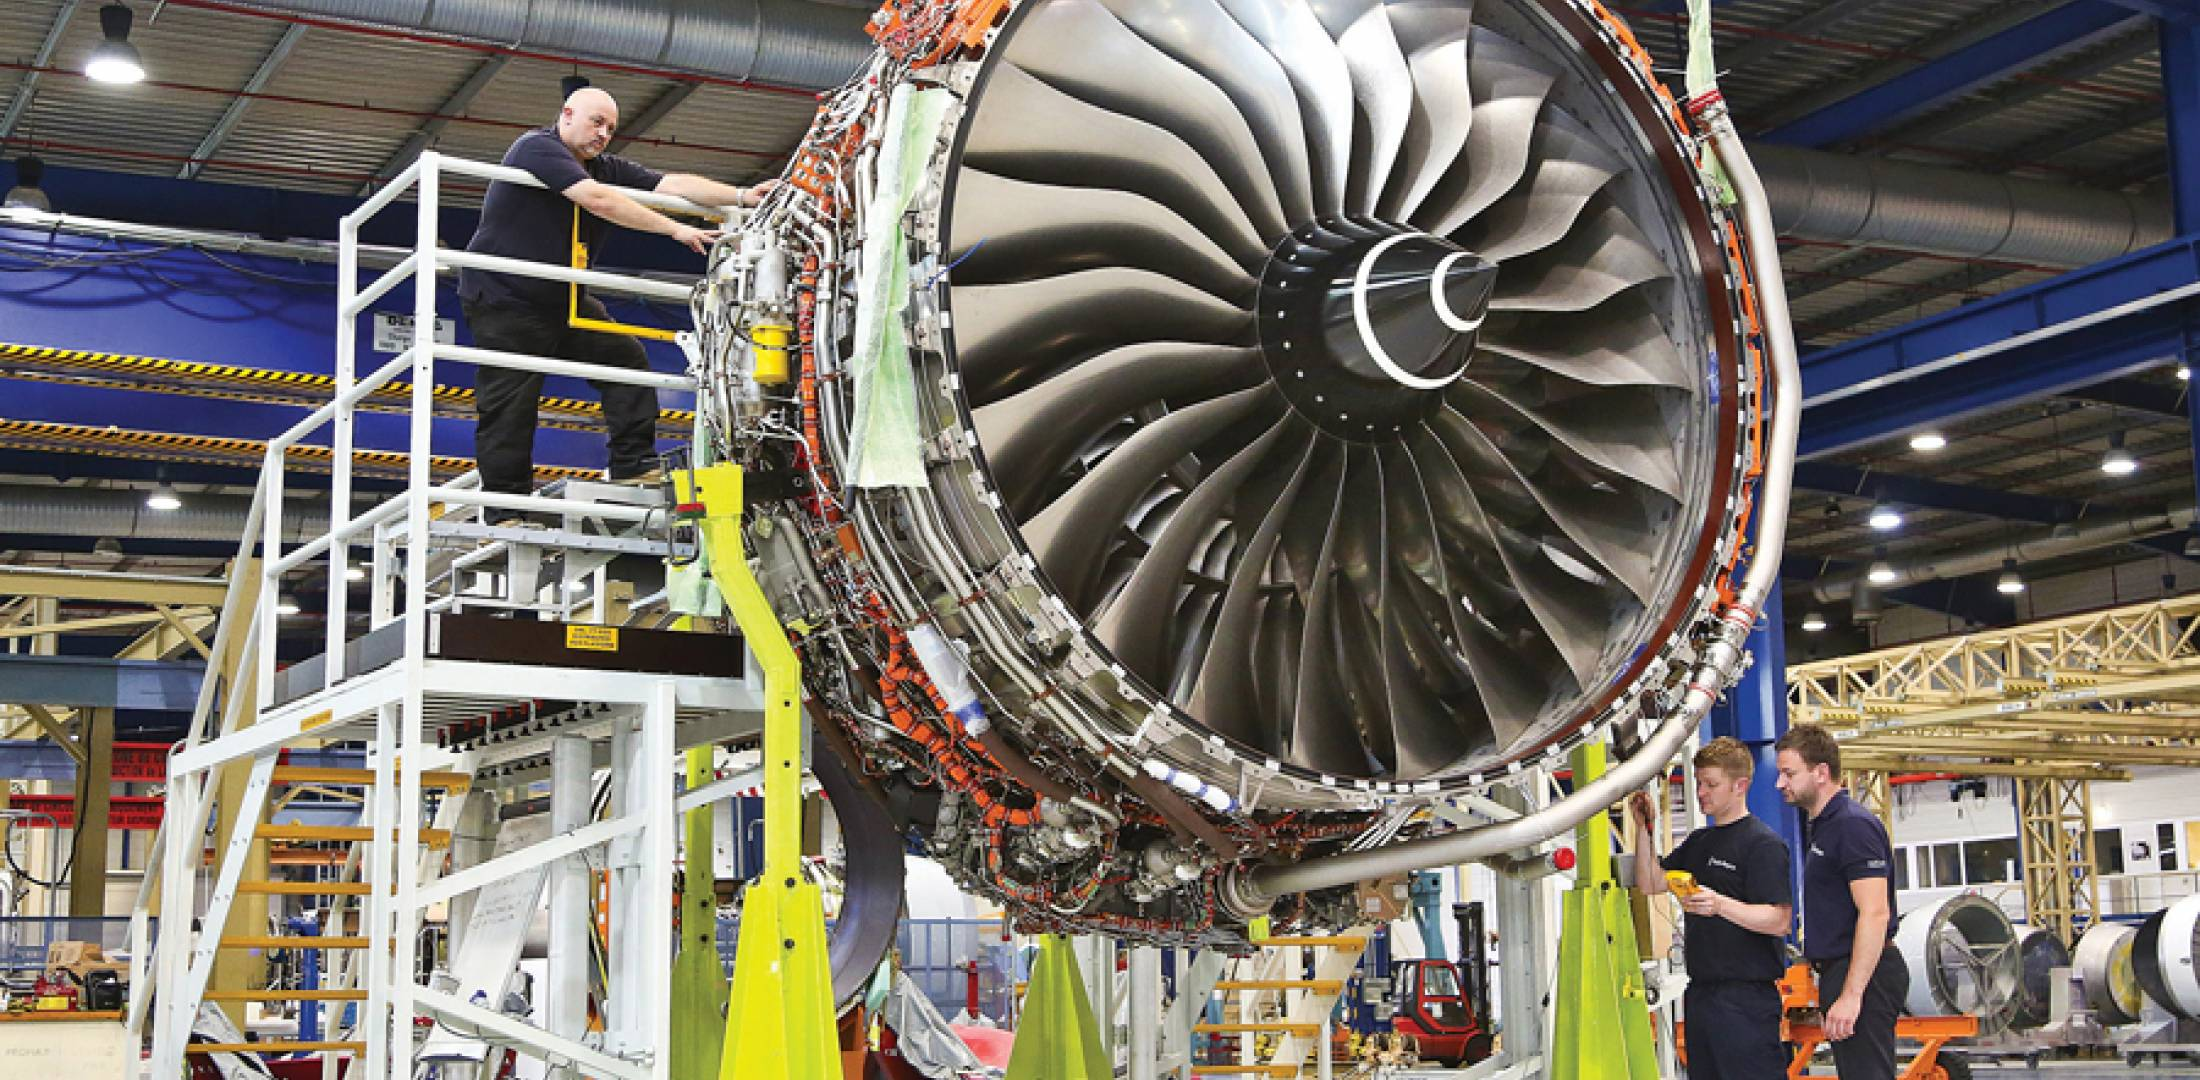 By January, Rolls-Royce had completed some 6,000 hours and 11,250 real and simulated flight-cycles of running with 13 development examples of the Trent XWB-84 that powers the new Airbus A350-900 twin-aisle twinjet. Two of the engines were being used for cyclic tests at Rolls-Royce North America's Outdoor Jet Engine Test Facility at the NASA John C. Stennis Space Center in Mississippi.